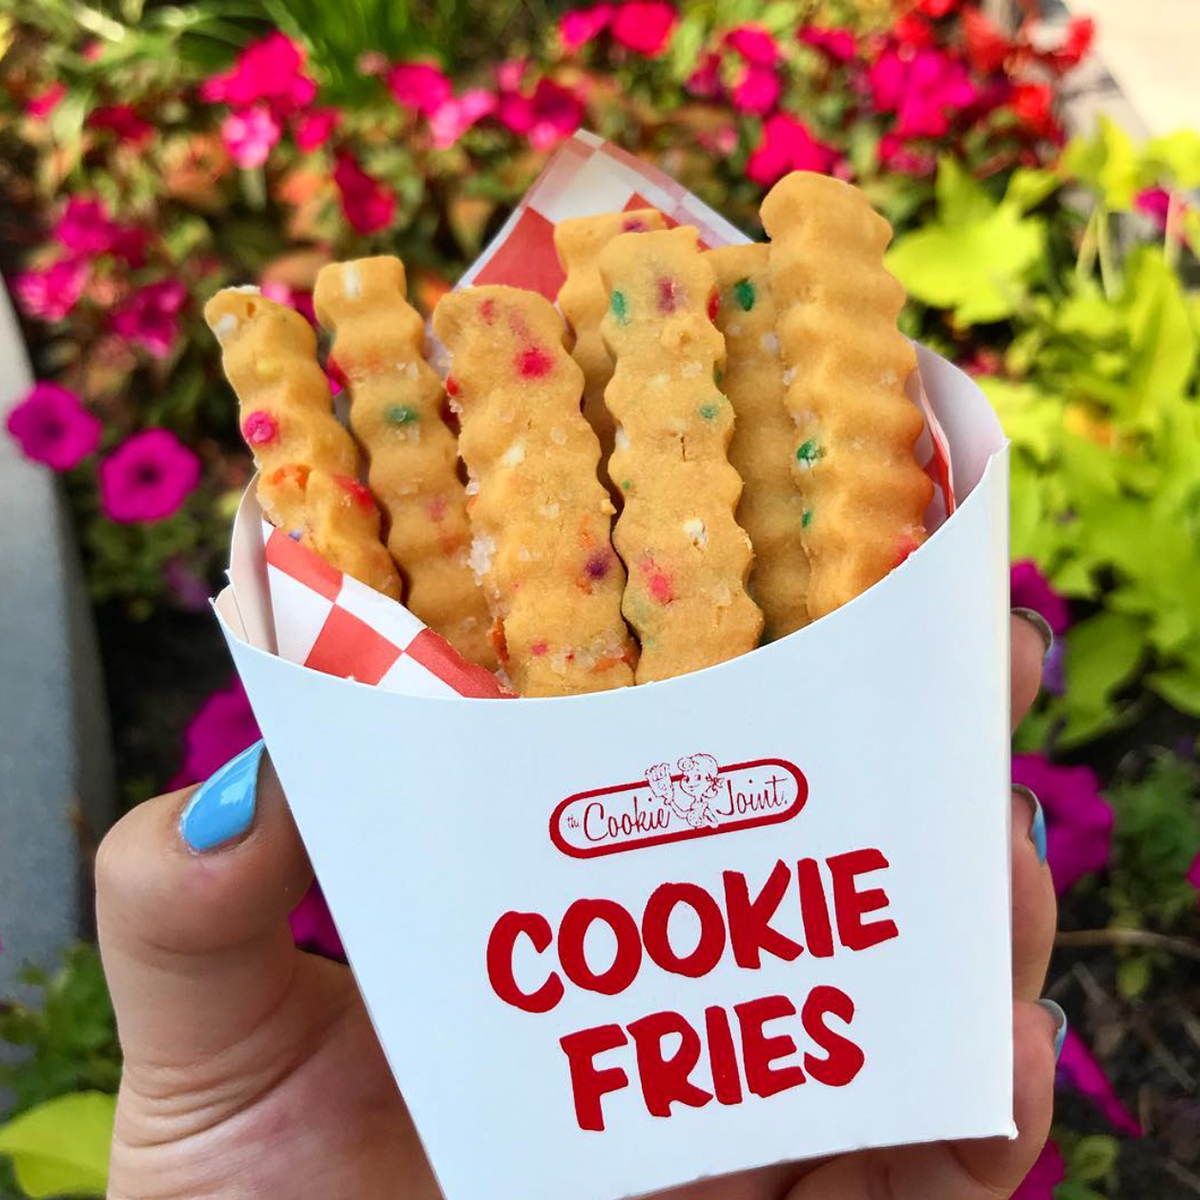 Cookies-Joint-Funfetti-Cookie-Fry-Product-V1-1.jpg